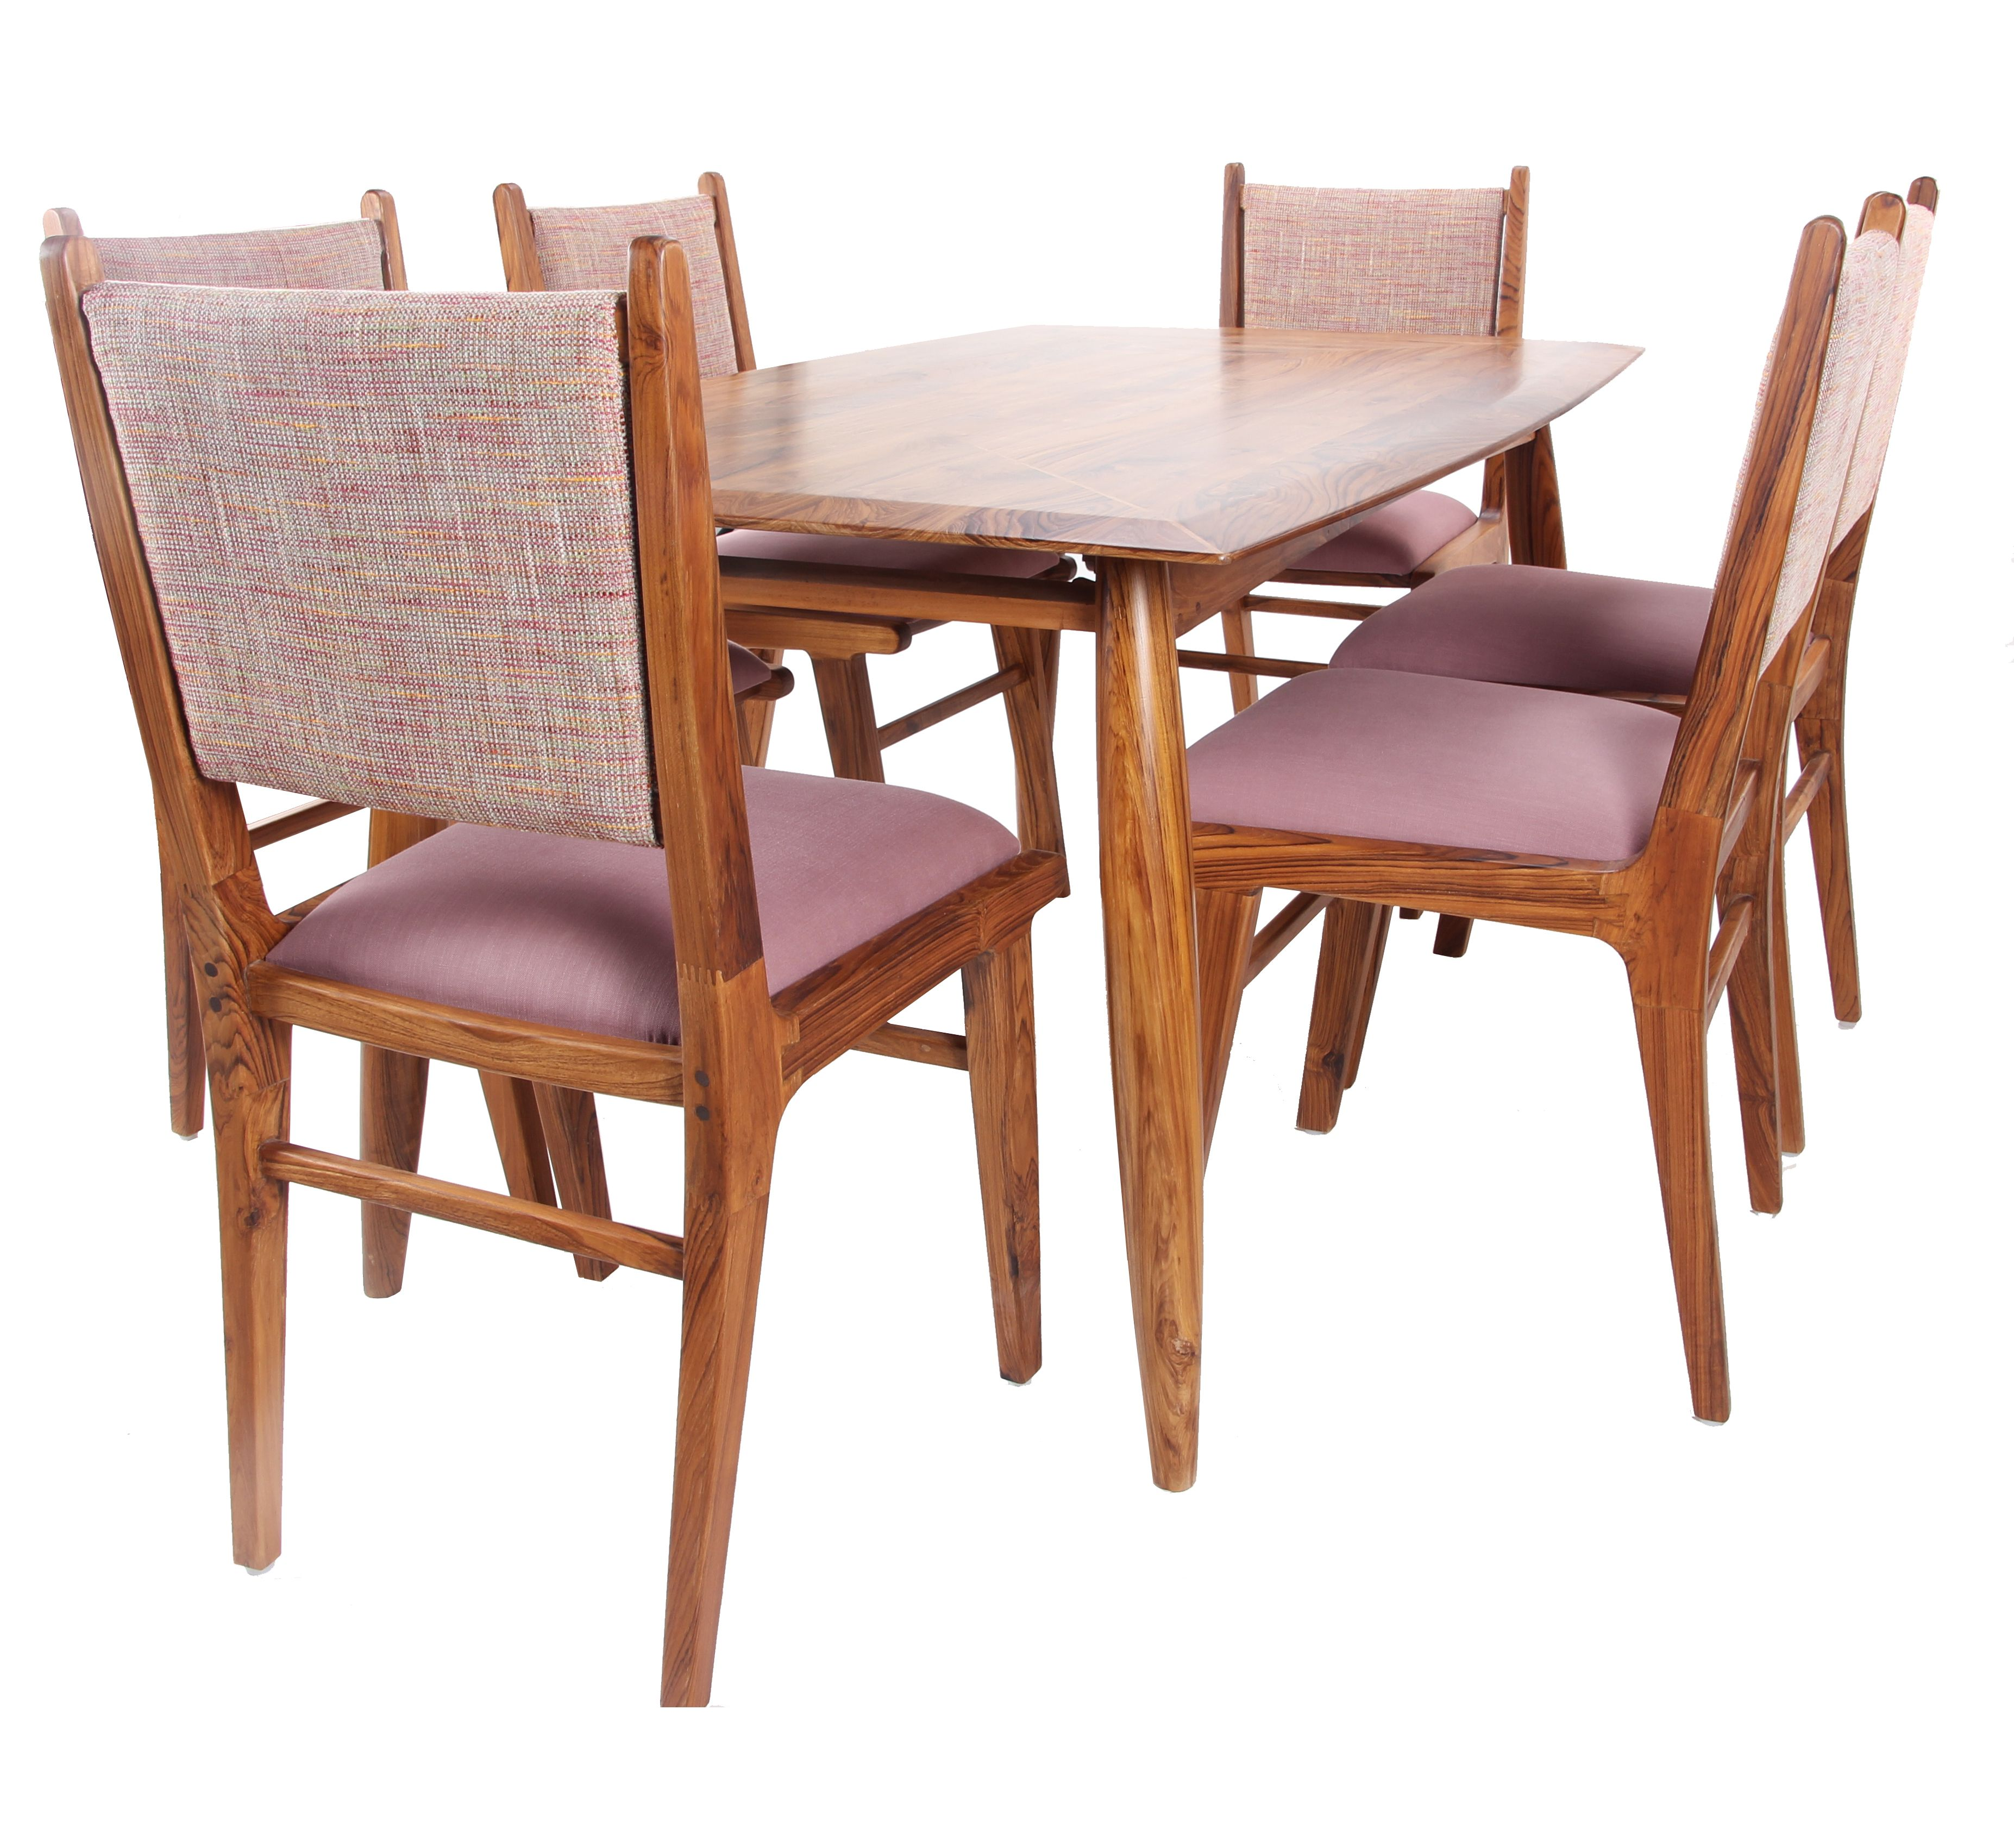 Another six seated dining set with upholstered chairs Entire